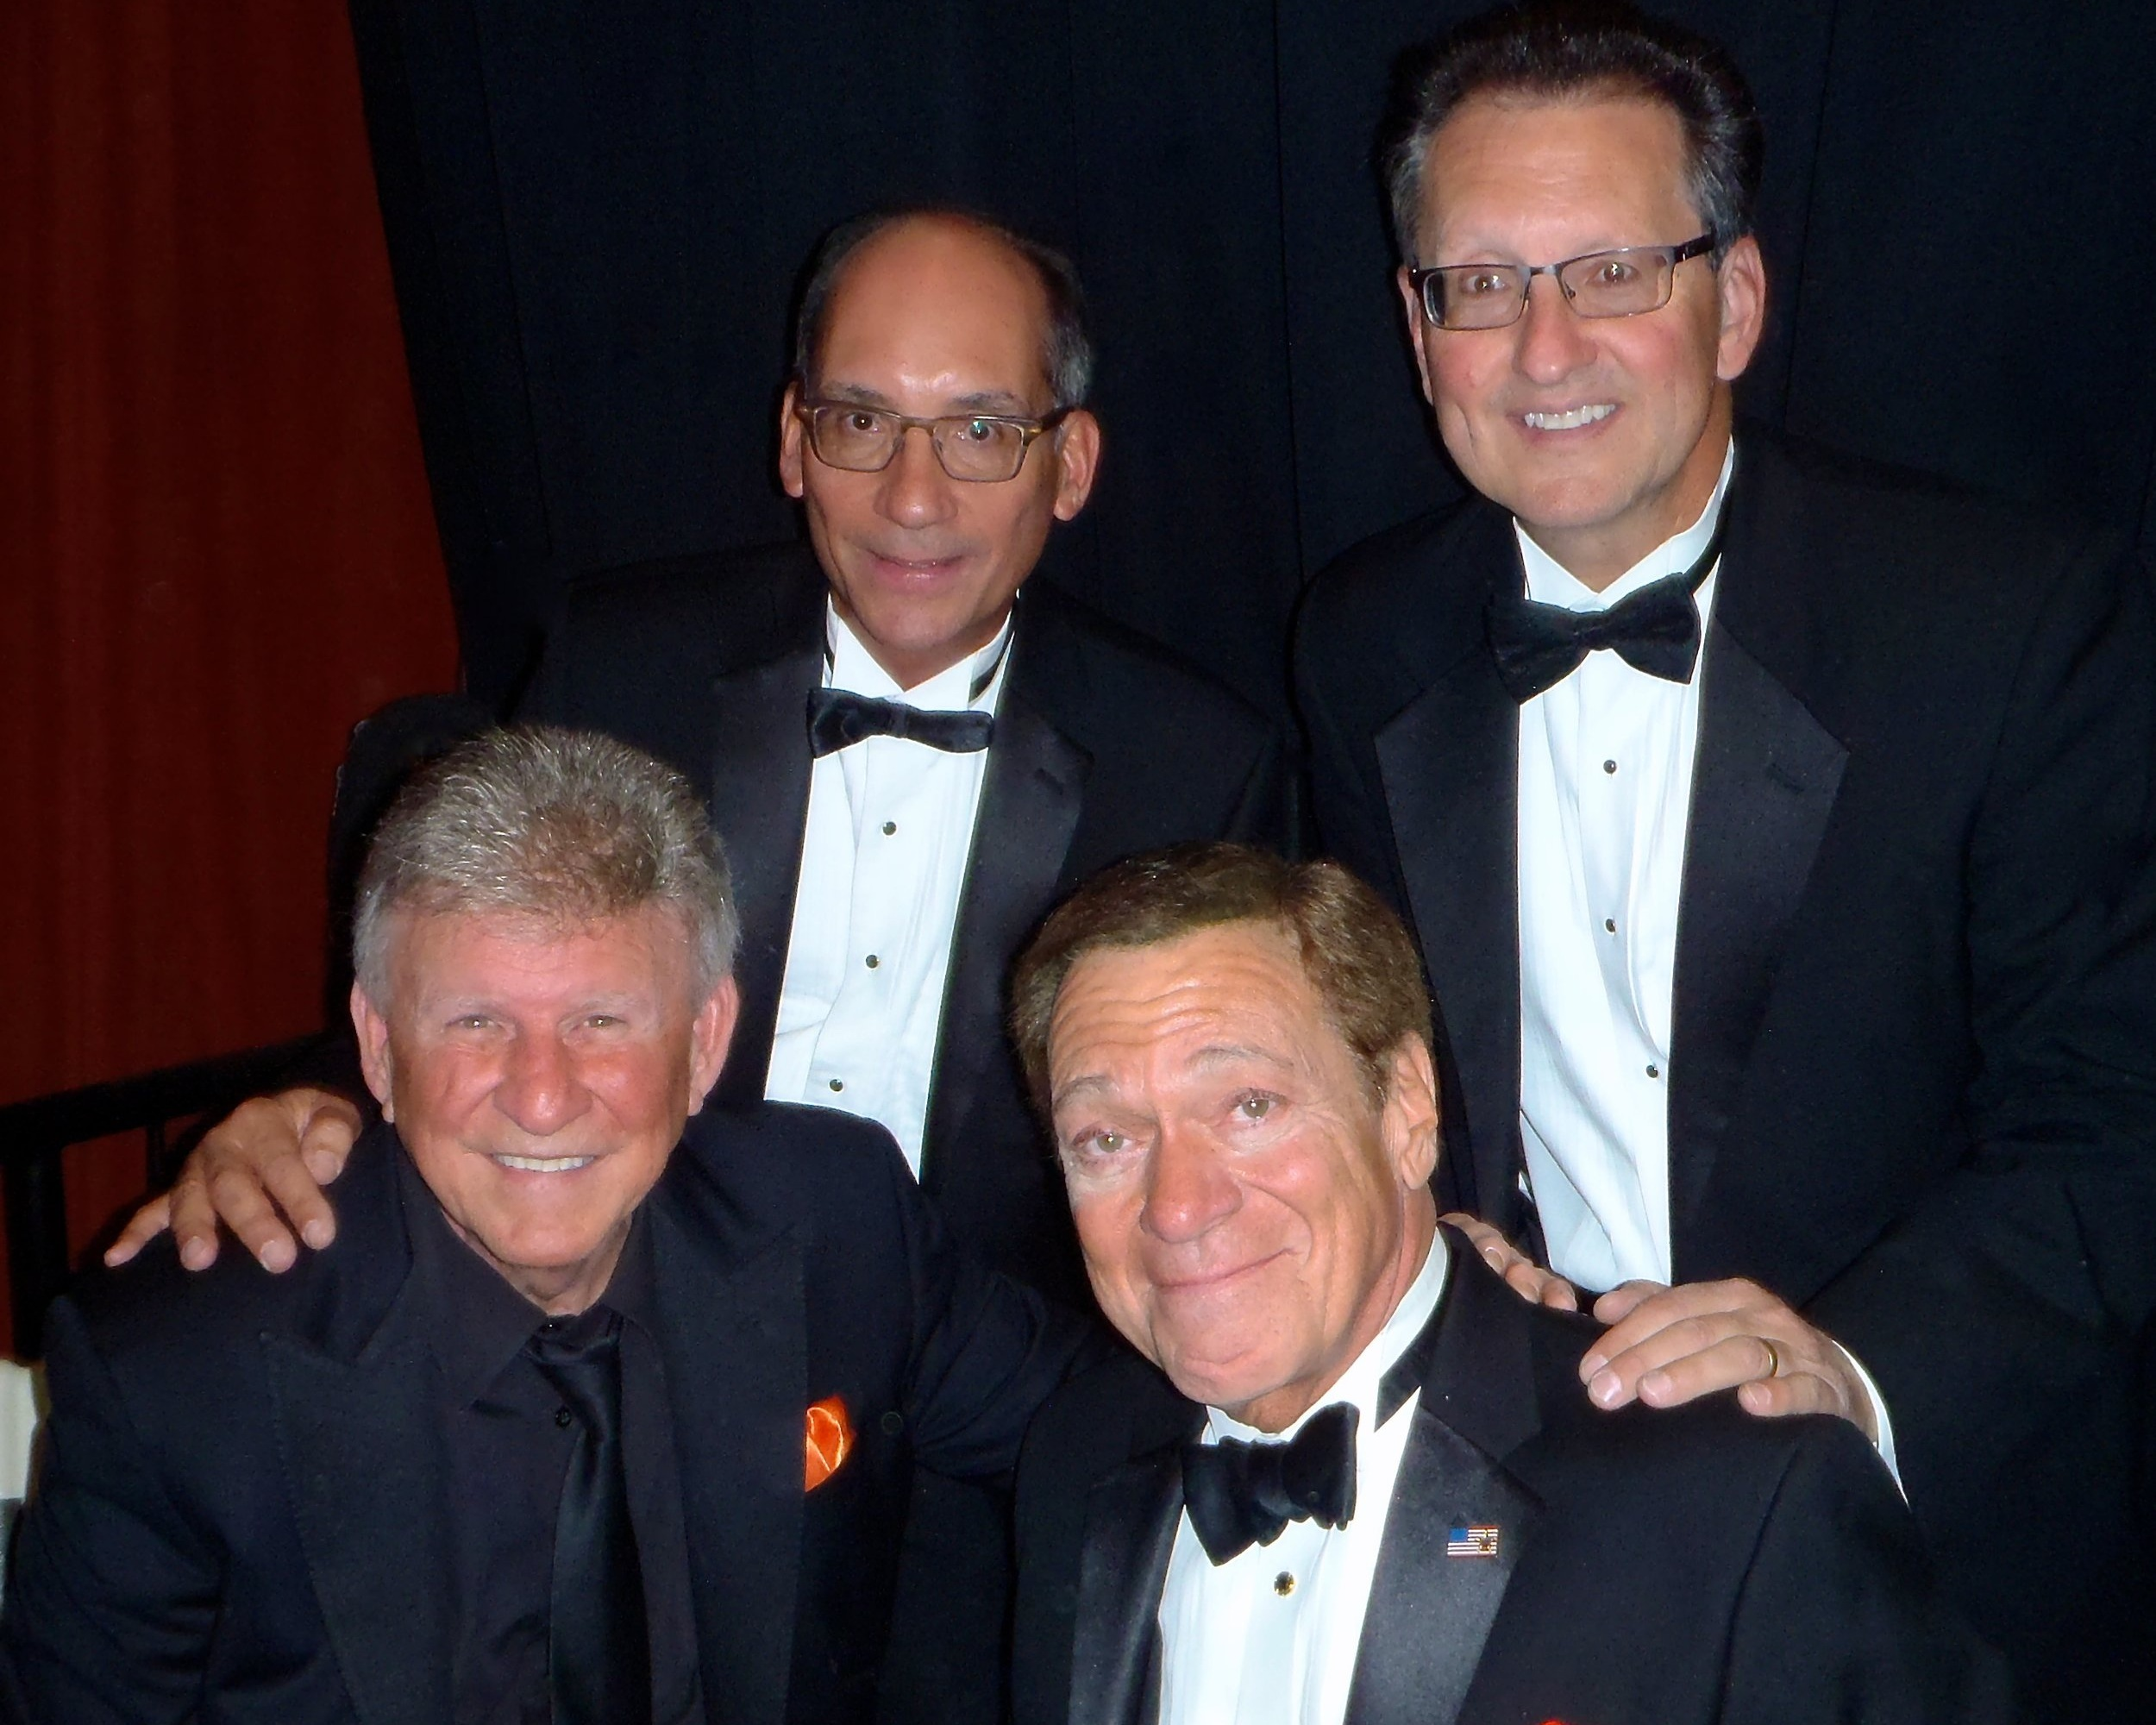 Show with Bobby Rydell & Joe Piscopo